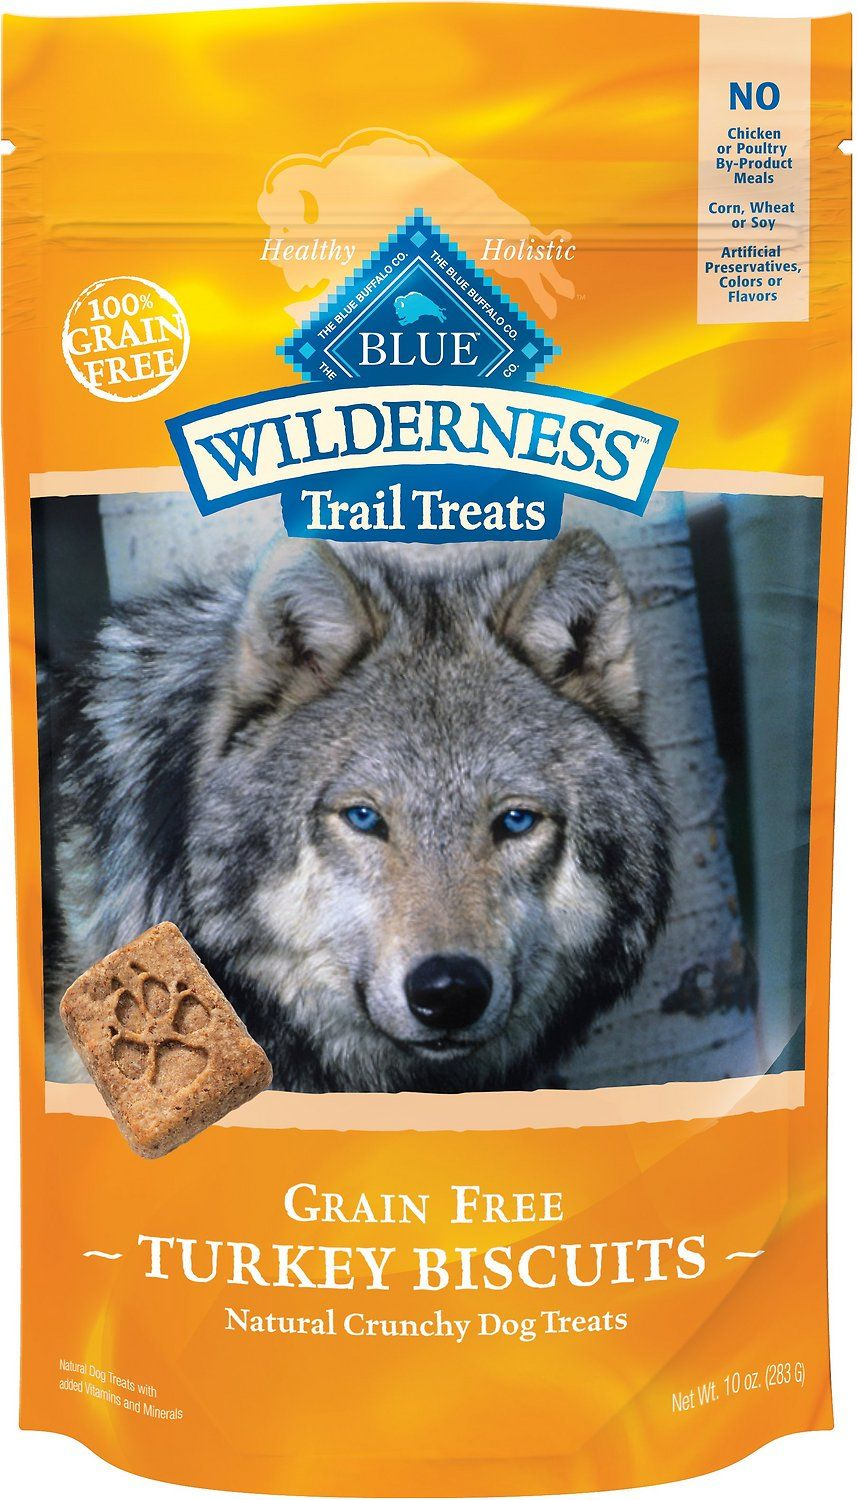 Blue Buffalo Wilderness Trail Treats Turkey Biscuits Grain